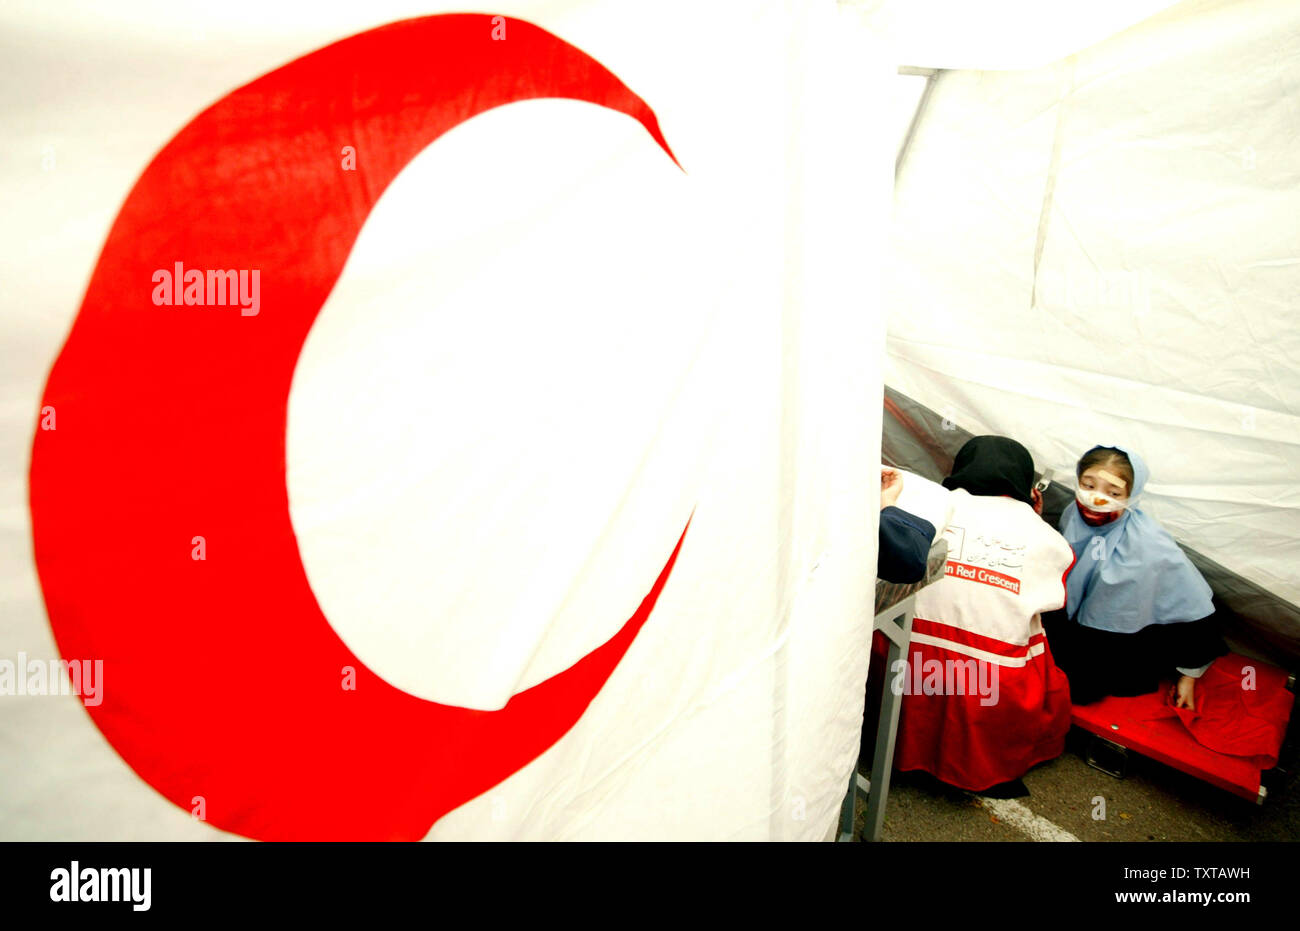 Iranian students treat a wounded student in a Red Crescent station during an earthquake drill in one of the schools in Tehran, Iran on  November 29, 2005.  This is the 7th drill in a series to help prepare students in this seismically active country. (UPI Photo/Mohammad Kheirkhah) - Stock Image